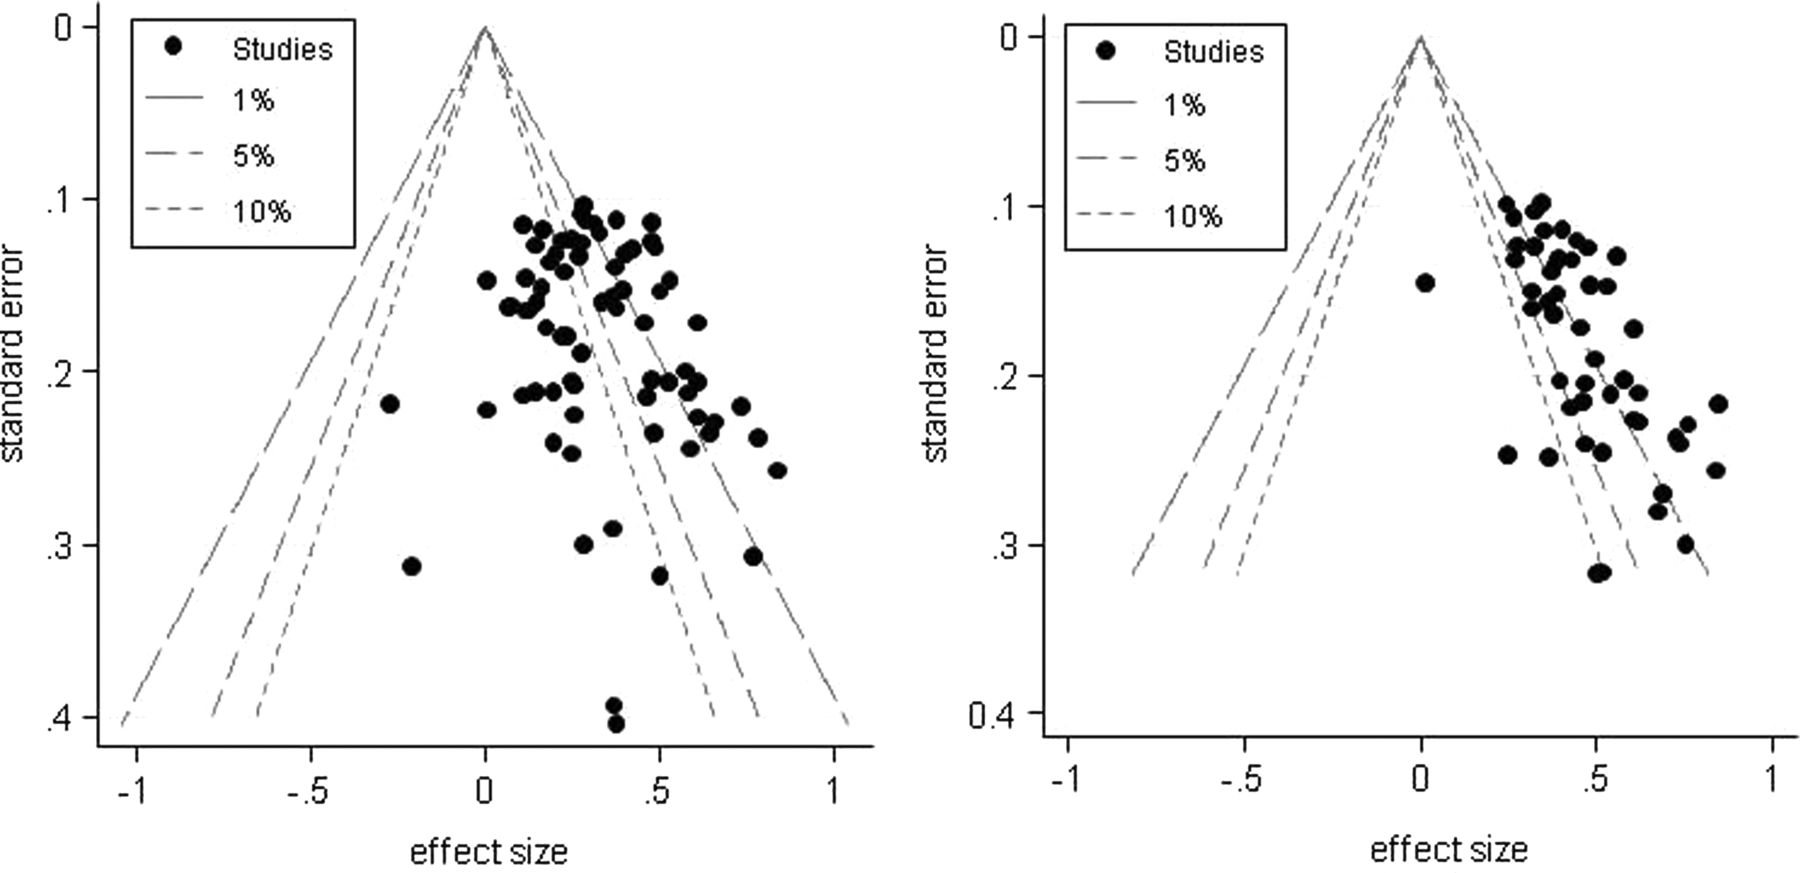 Exploring and accounting for publication bias in mental